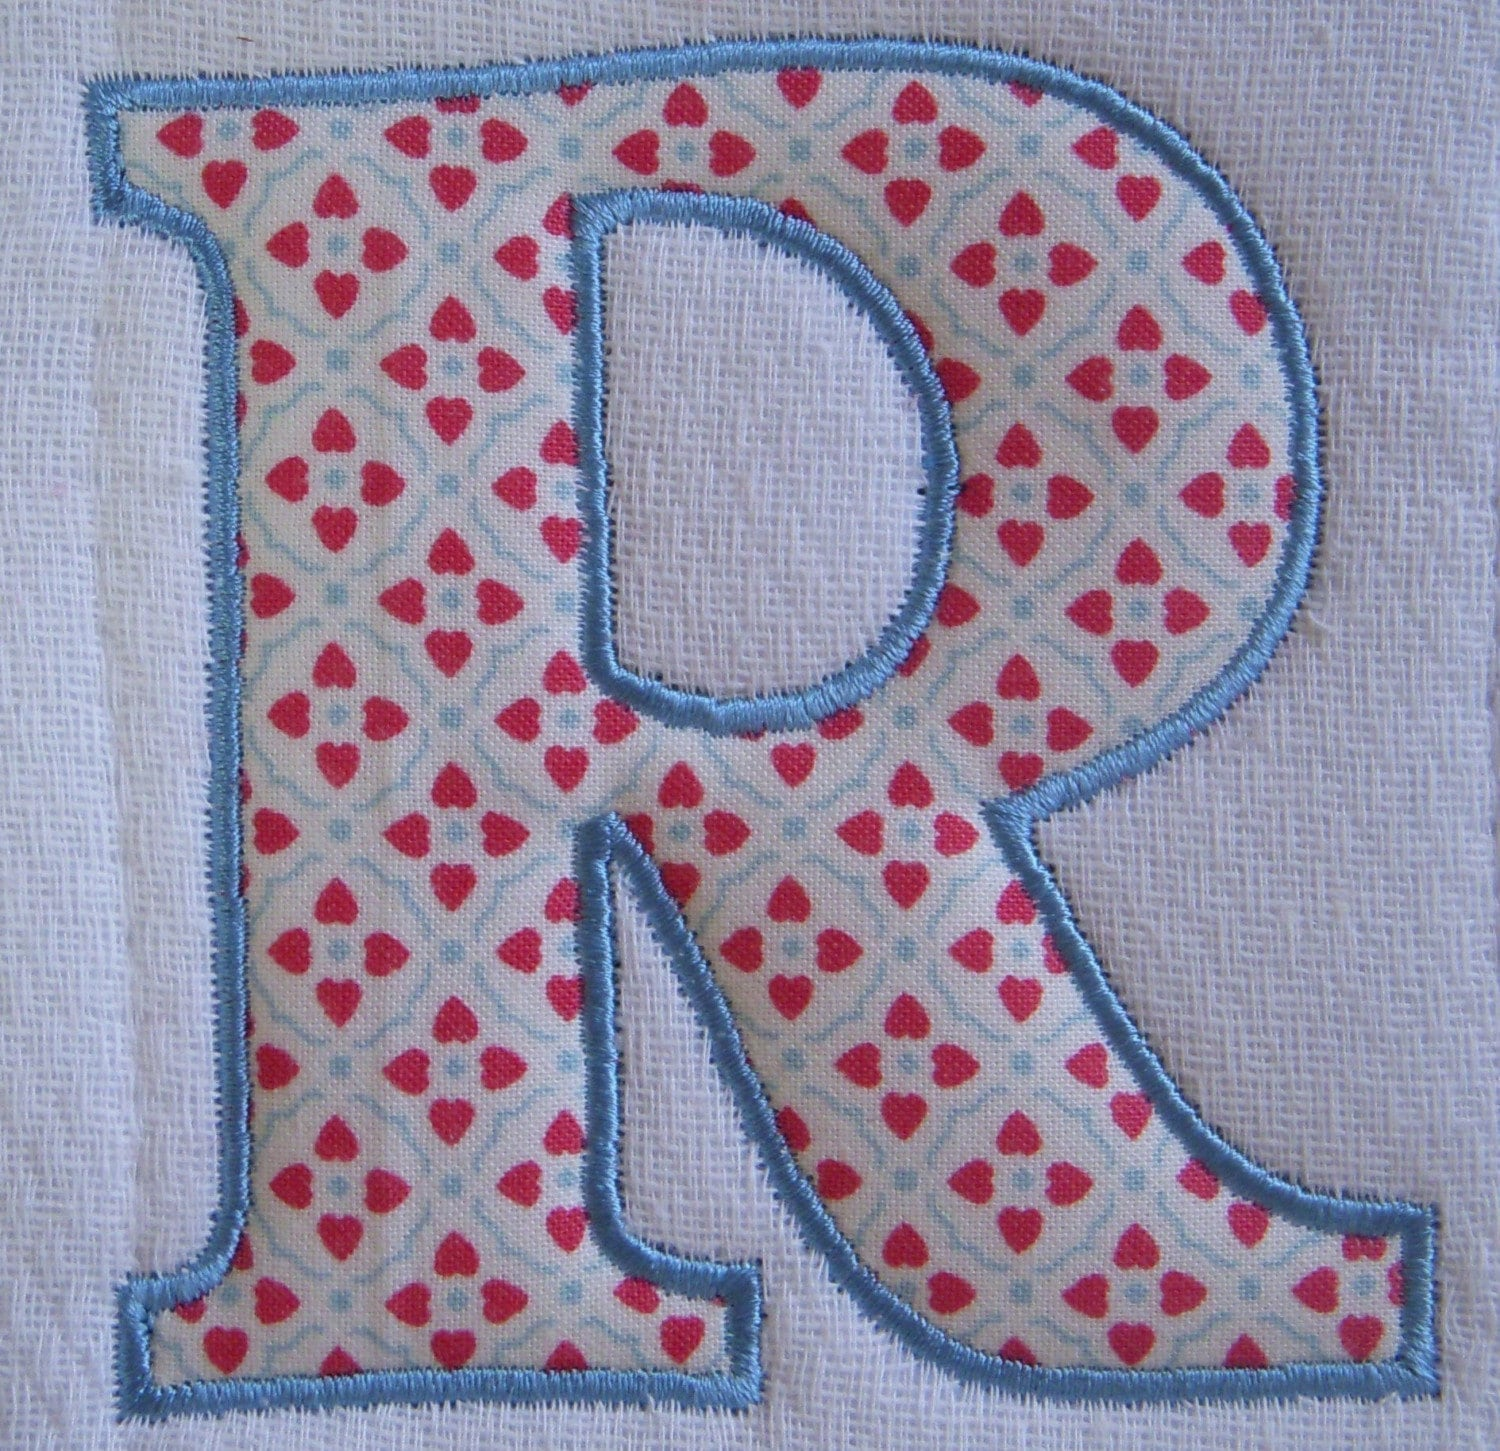 Applique Free Embroidery Machine Applique Pattern Free Embroidery